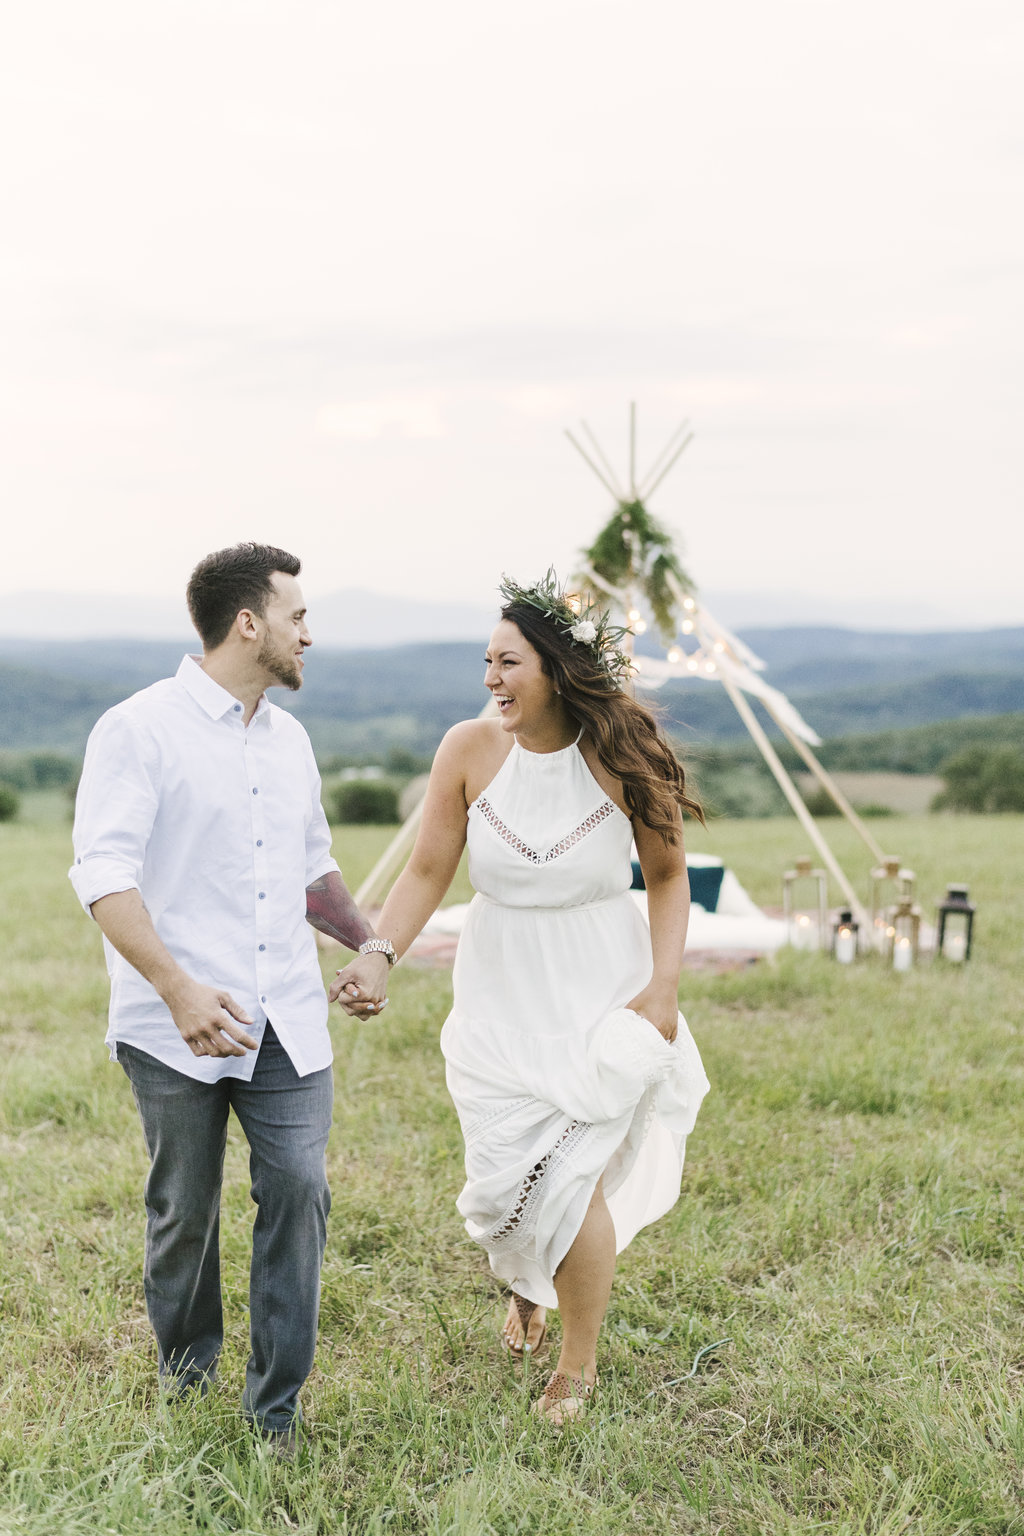 Monice-Relyea-events-alicia-king-photography-amanda-matt-engangement-globe-hill19